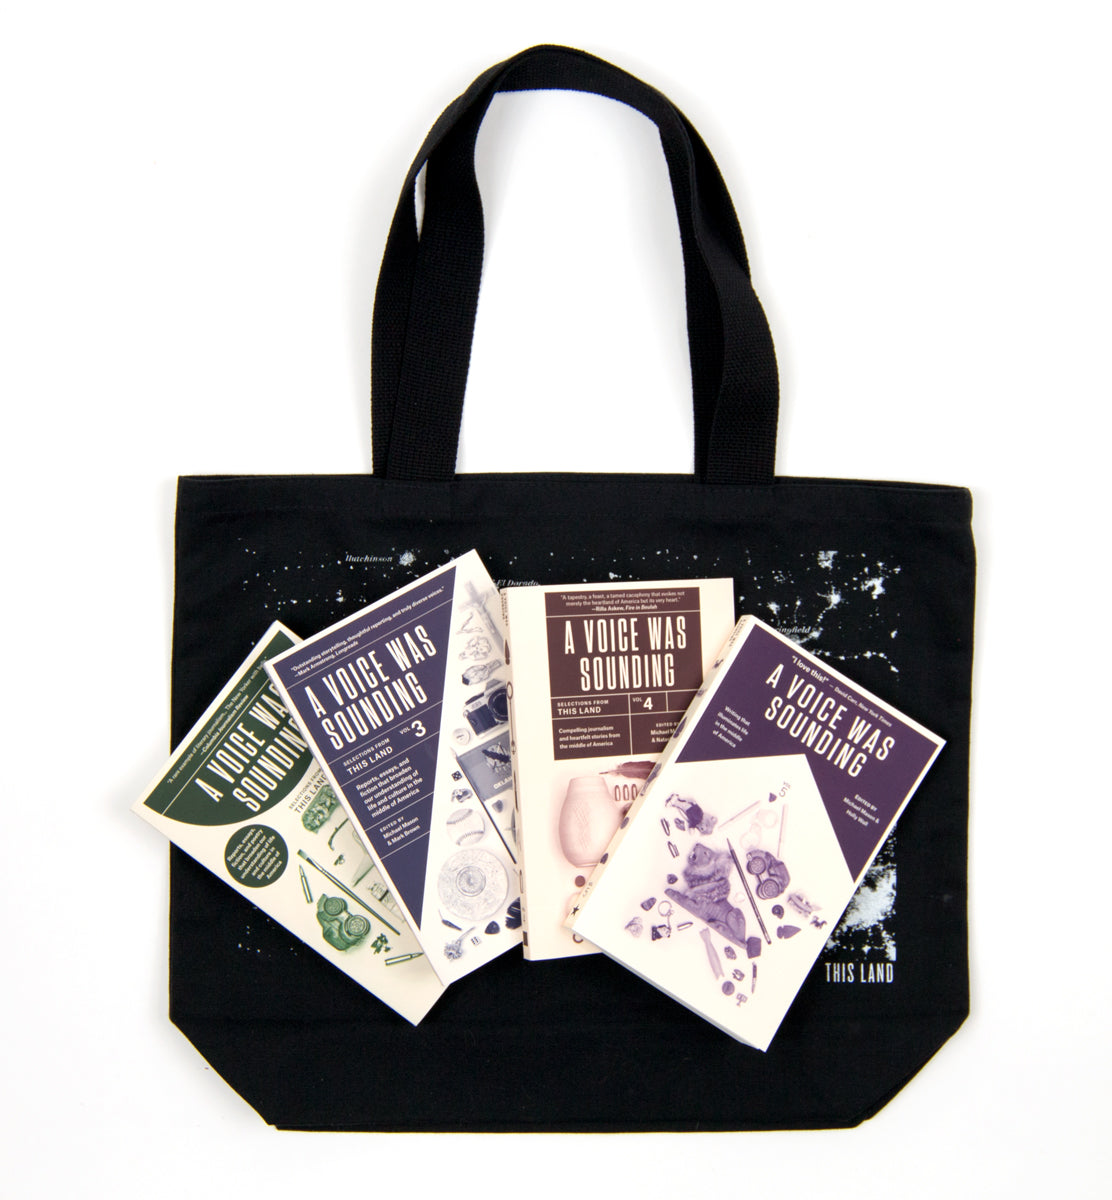 A Voice Was Sounding - 4 Book + Tote Bag Bundle